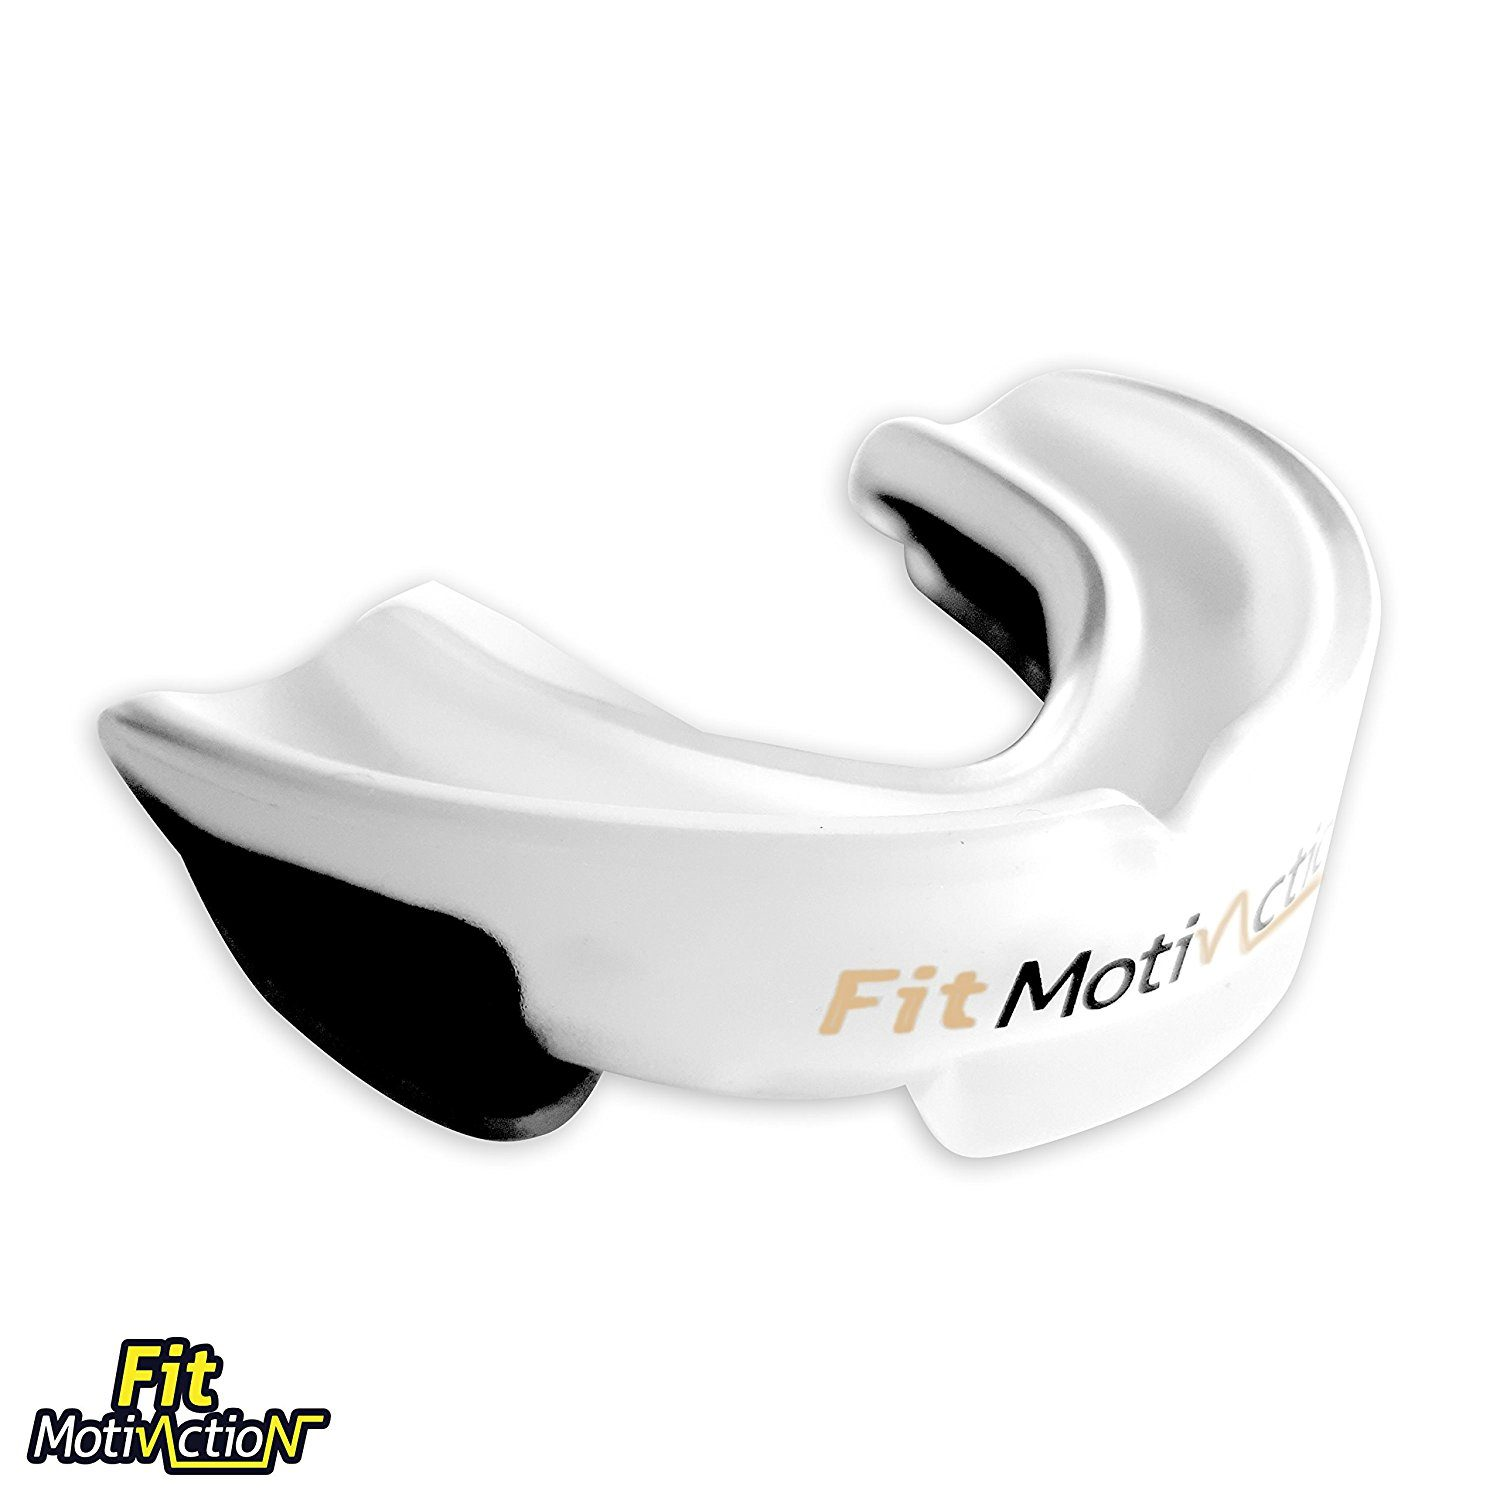 FitMotivaction Thermoformable en Promo -42%